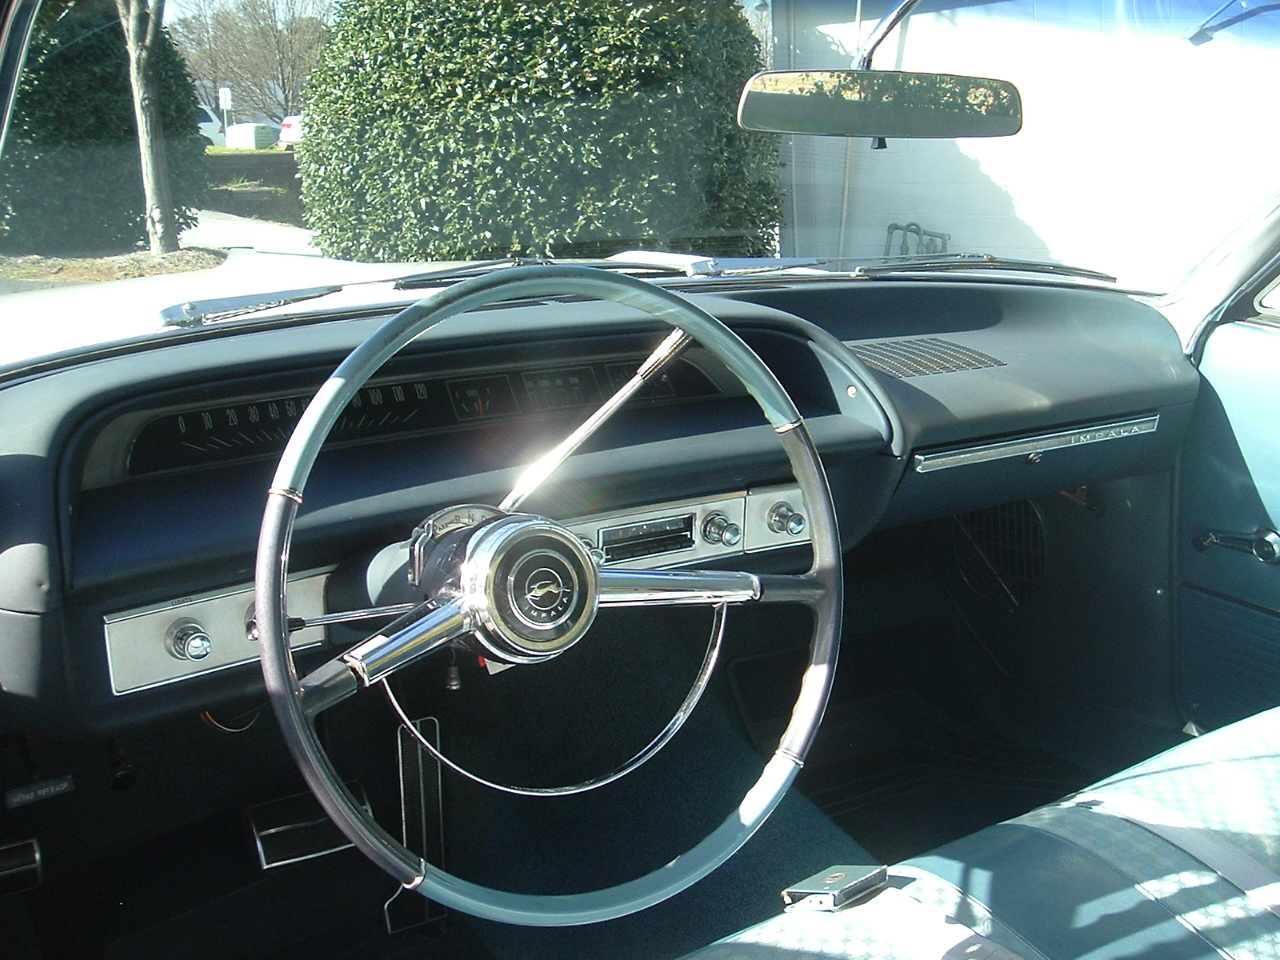 1964 Impala Two Door Hardtop White (11)